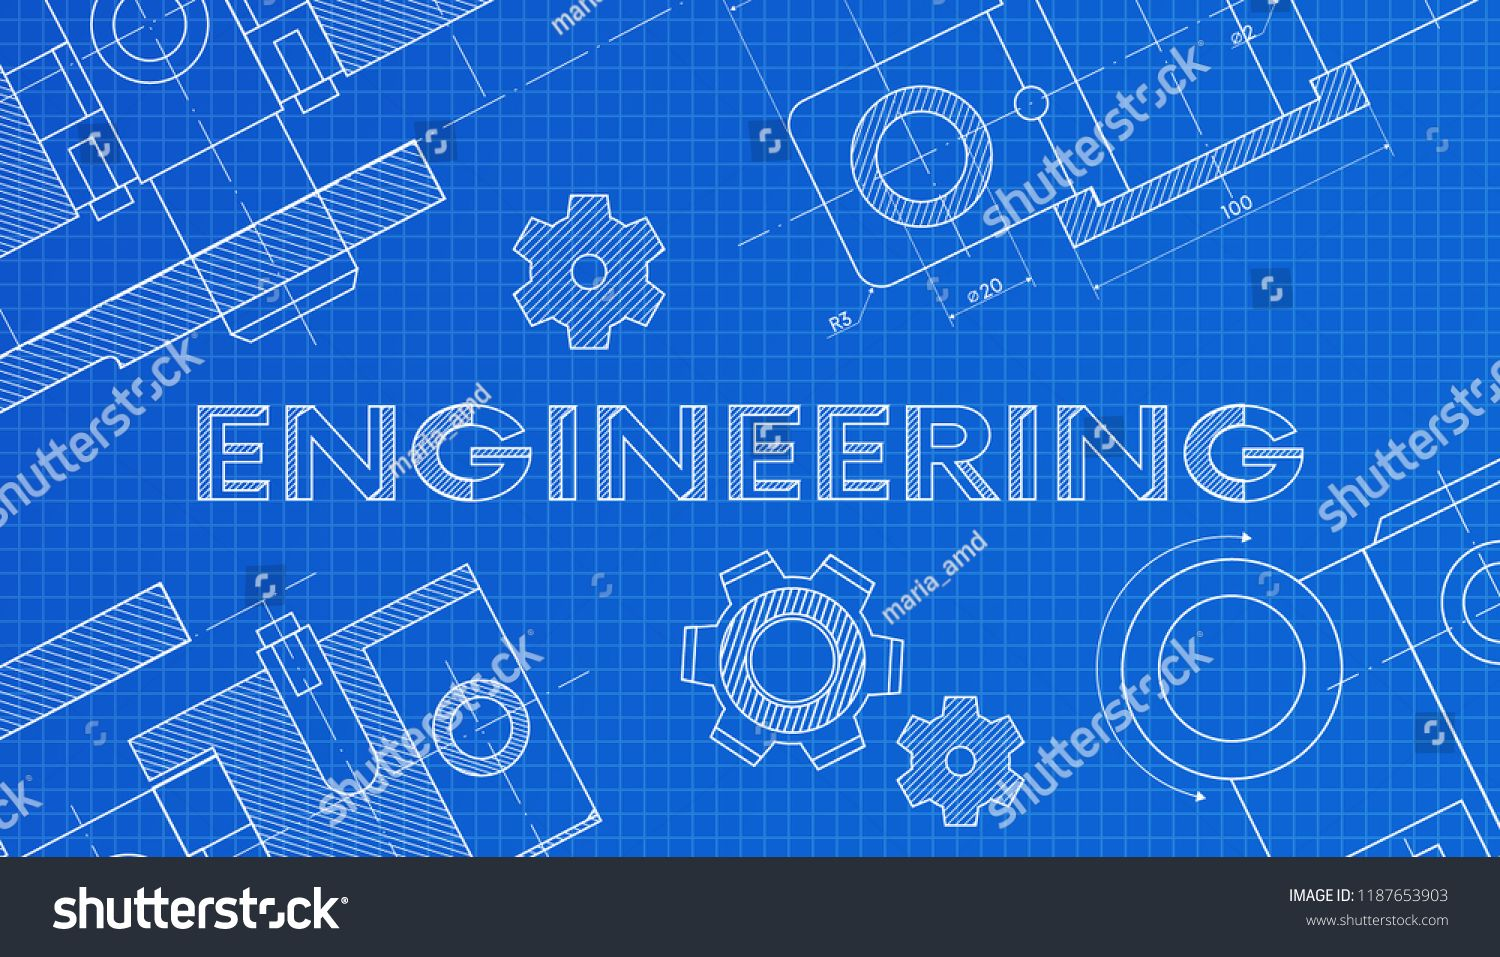 Mechanical Engineering Drawings Technical Drawing Abstract Technology Background Engineering Science Mathematics Education Engineering Science Engineering